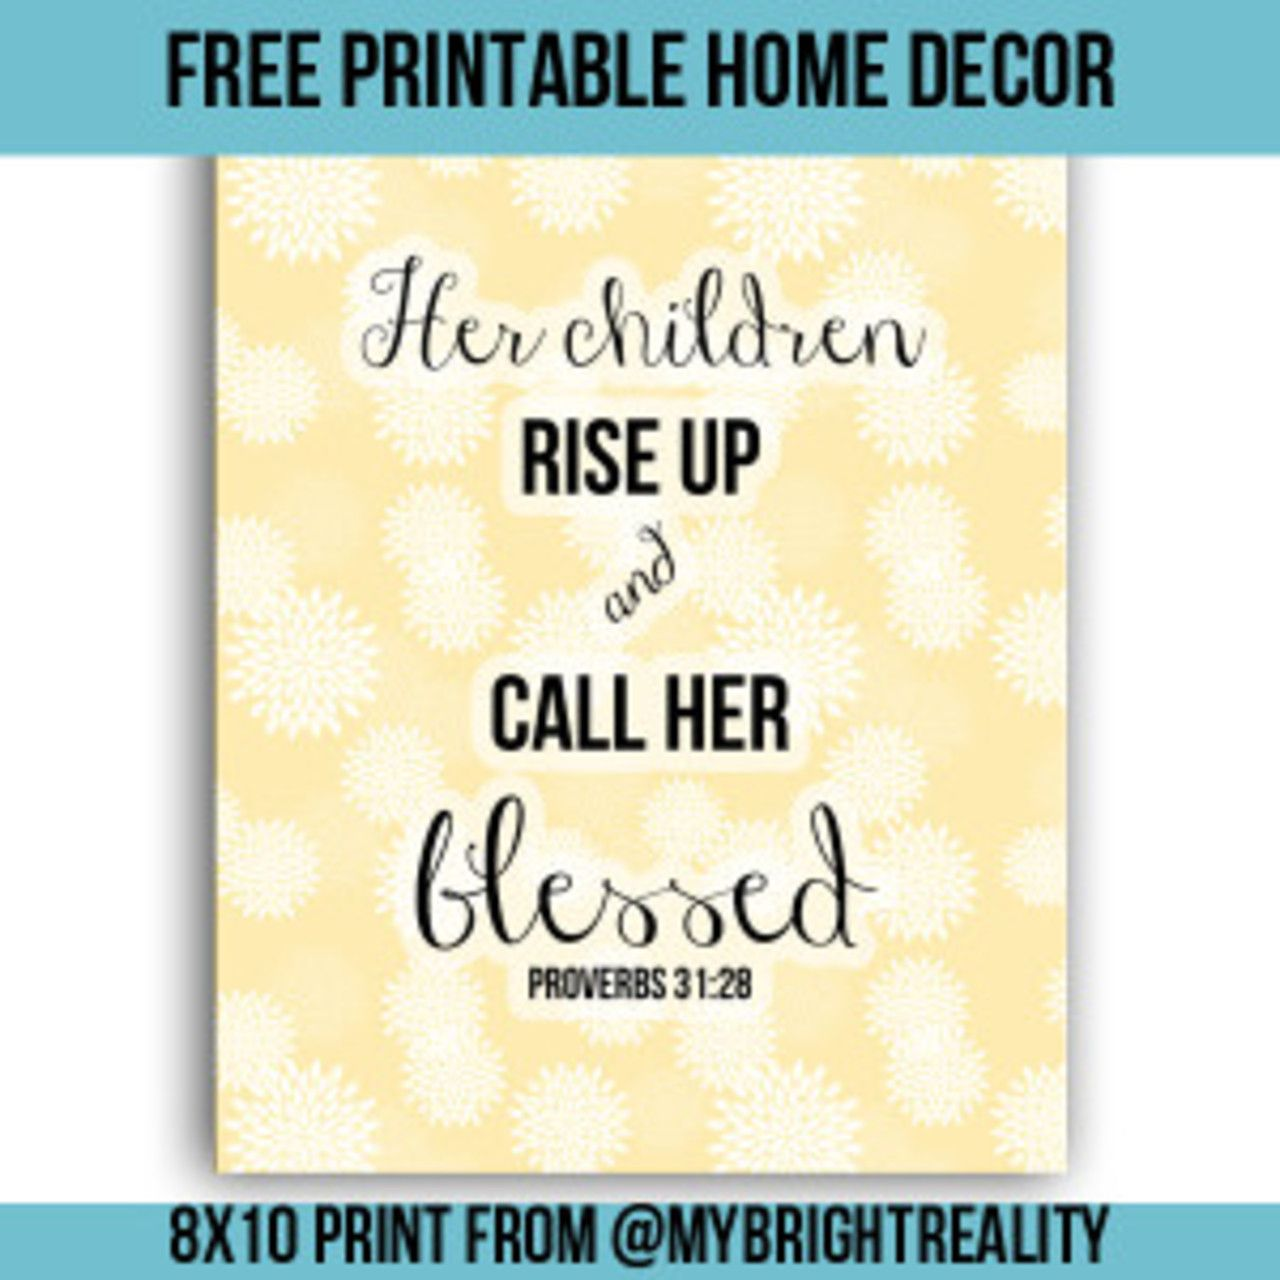 Free Proverbs 31:28 Bible Verse Printable decor for the home. | Free ...